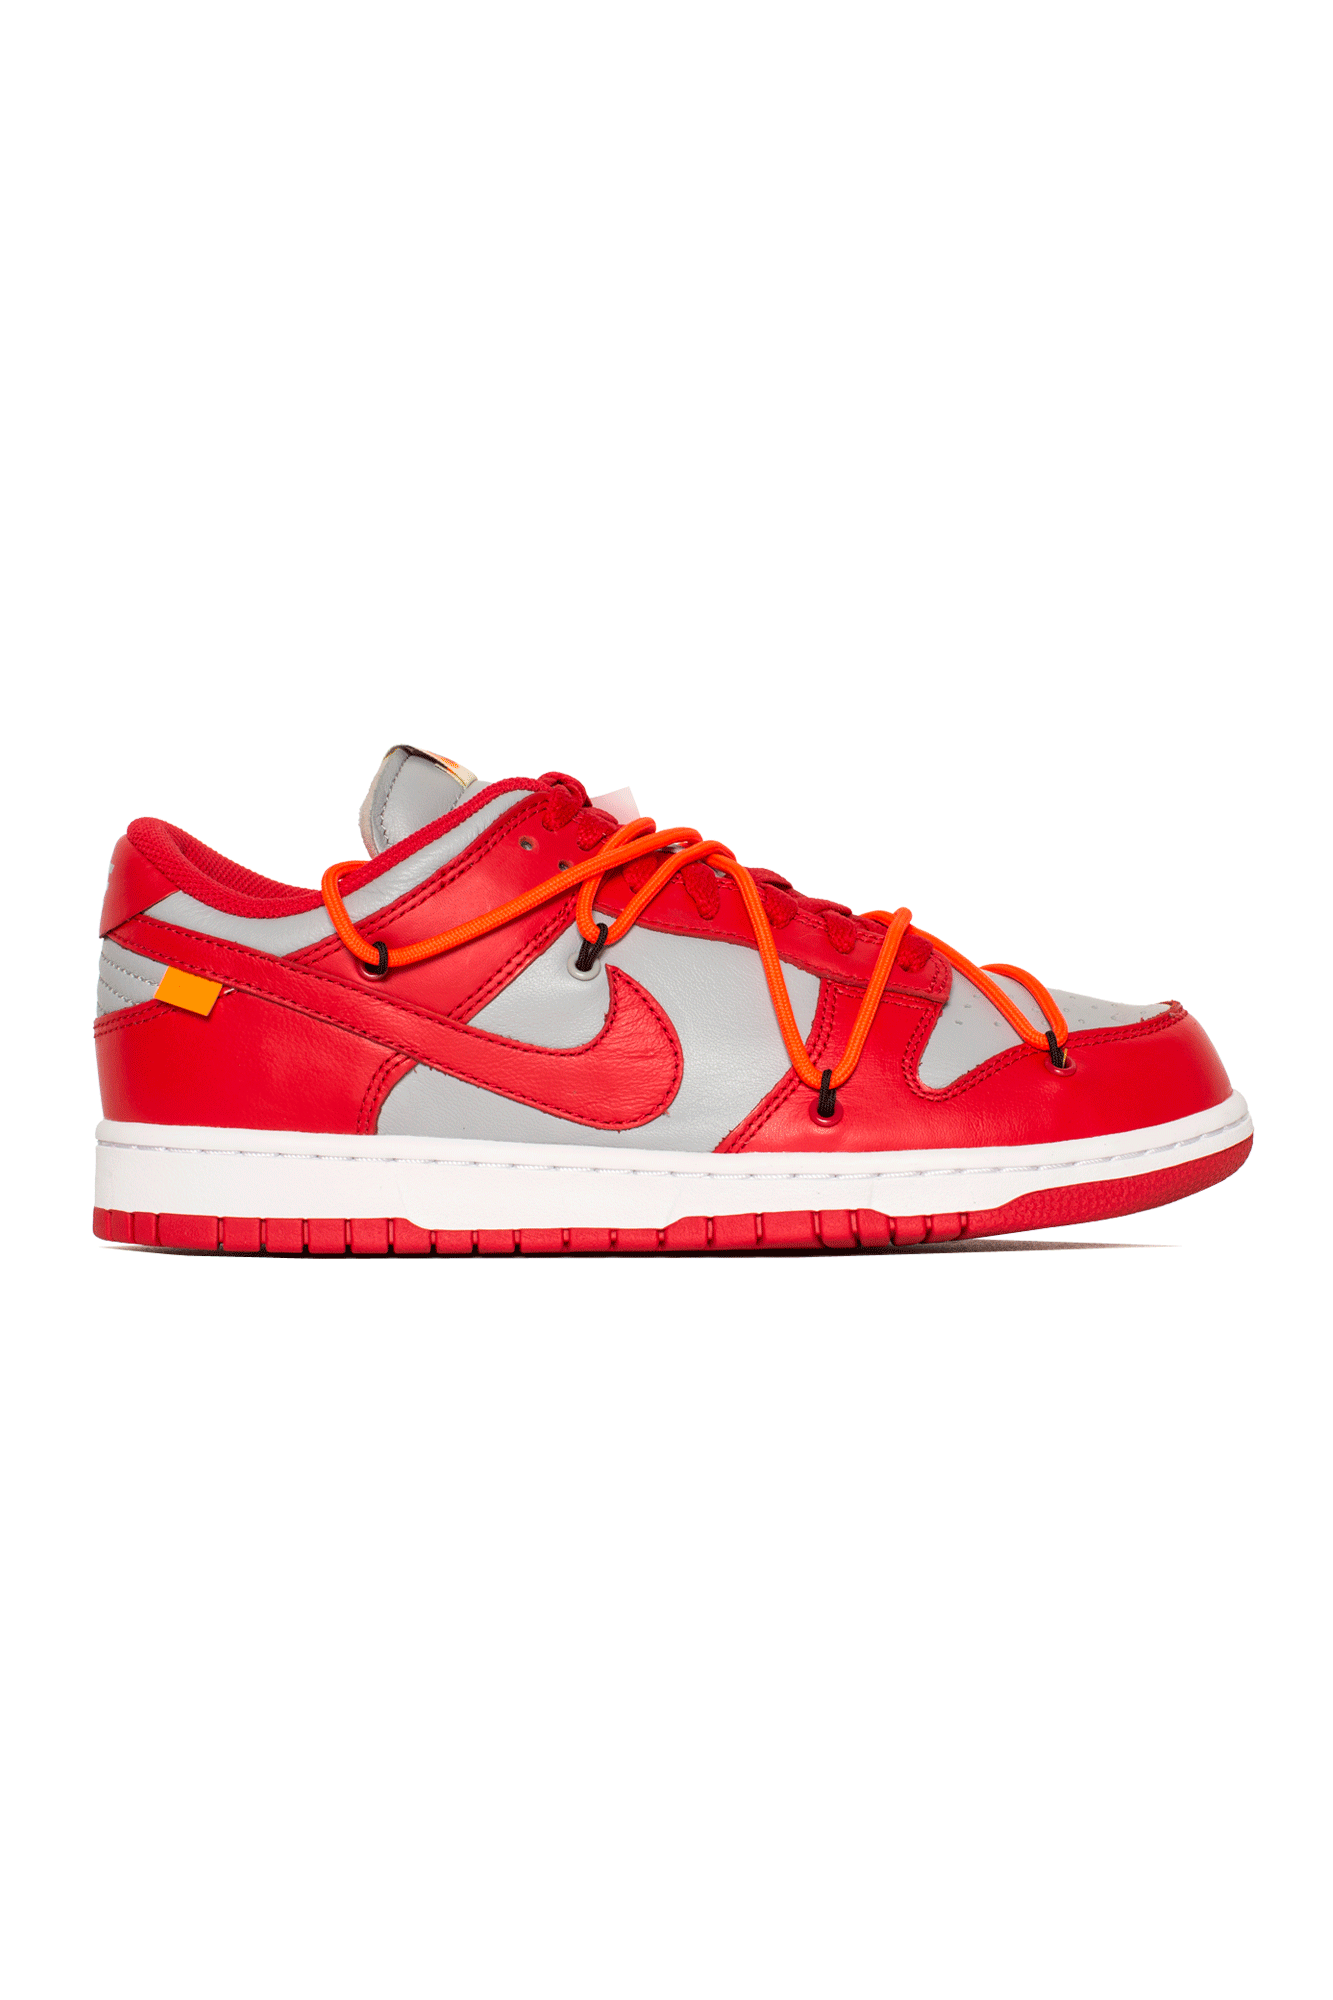 "Dunk Low LTHR x Off-White ""University Red"""